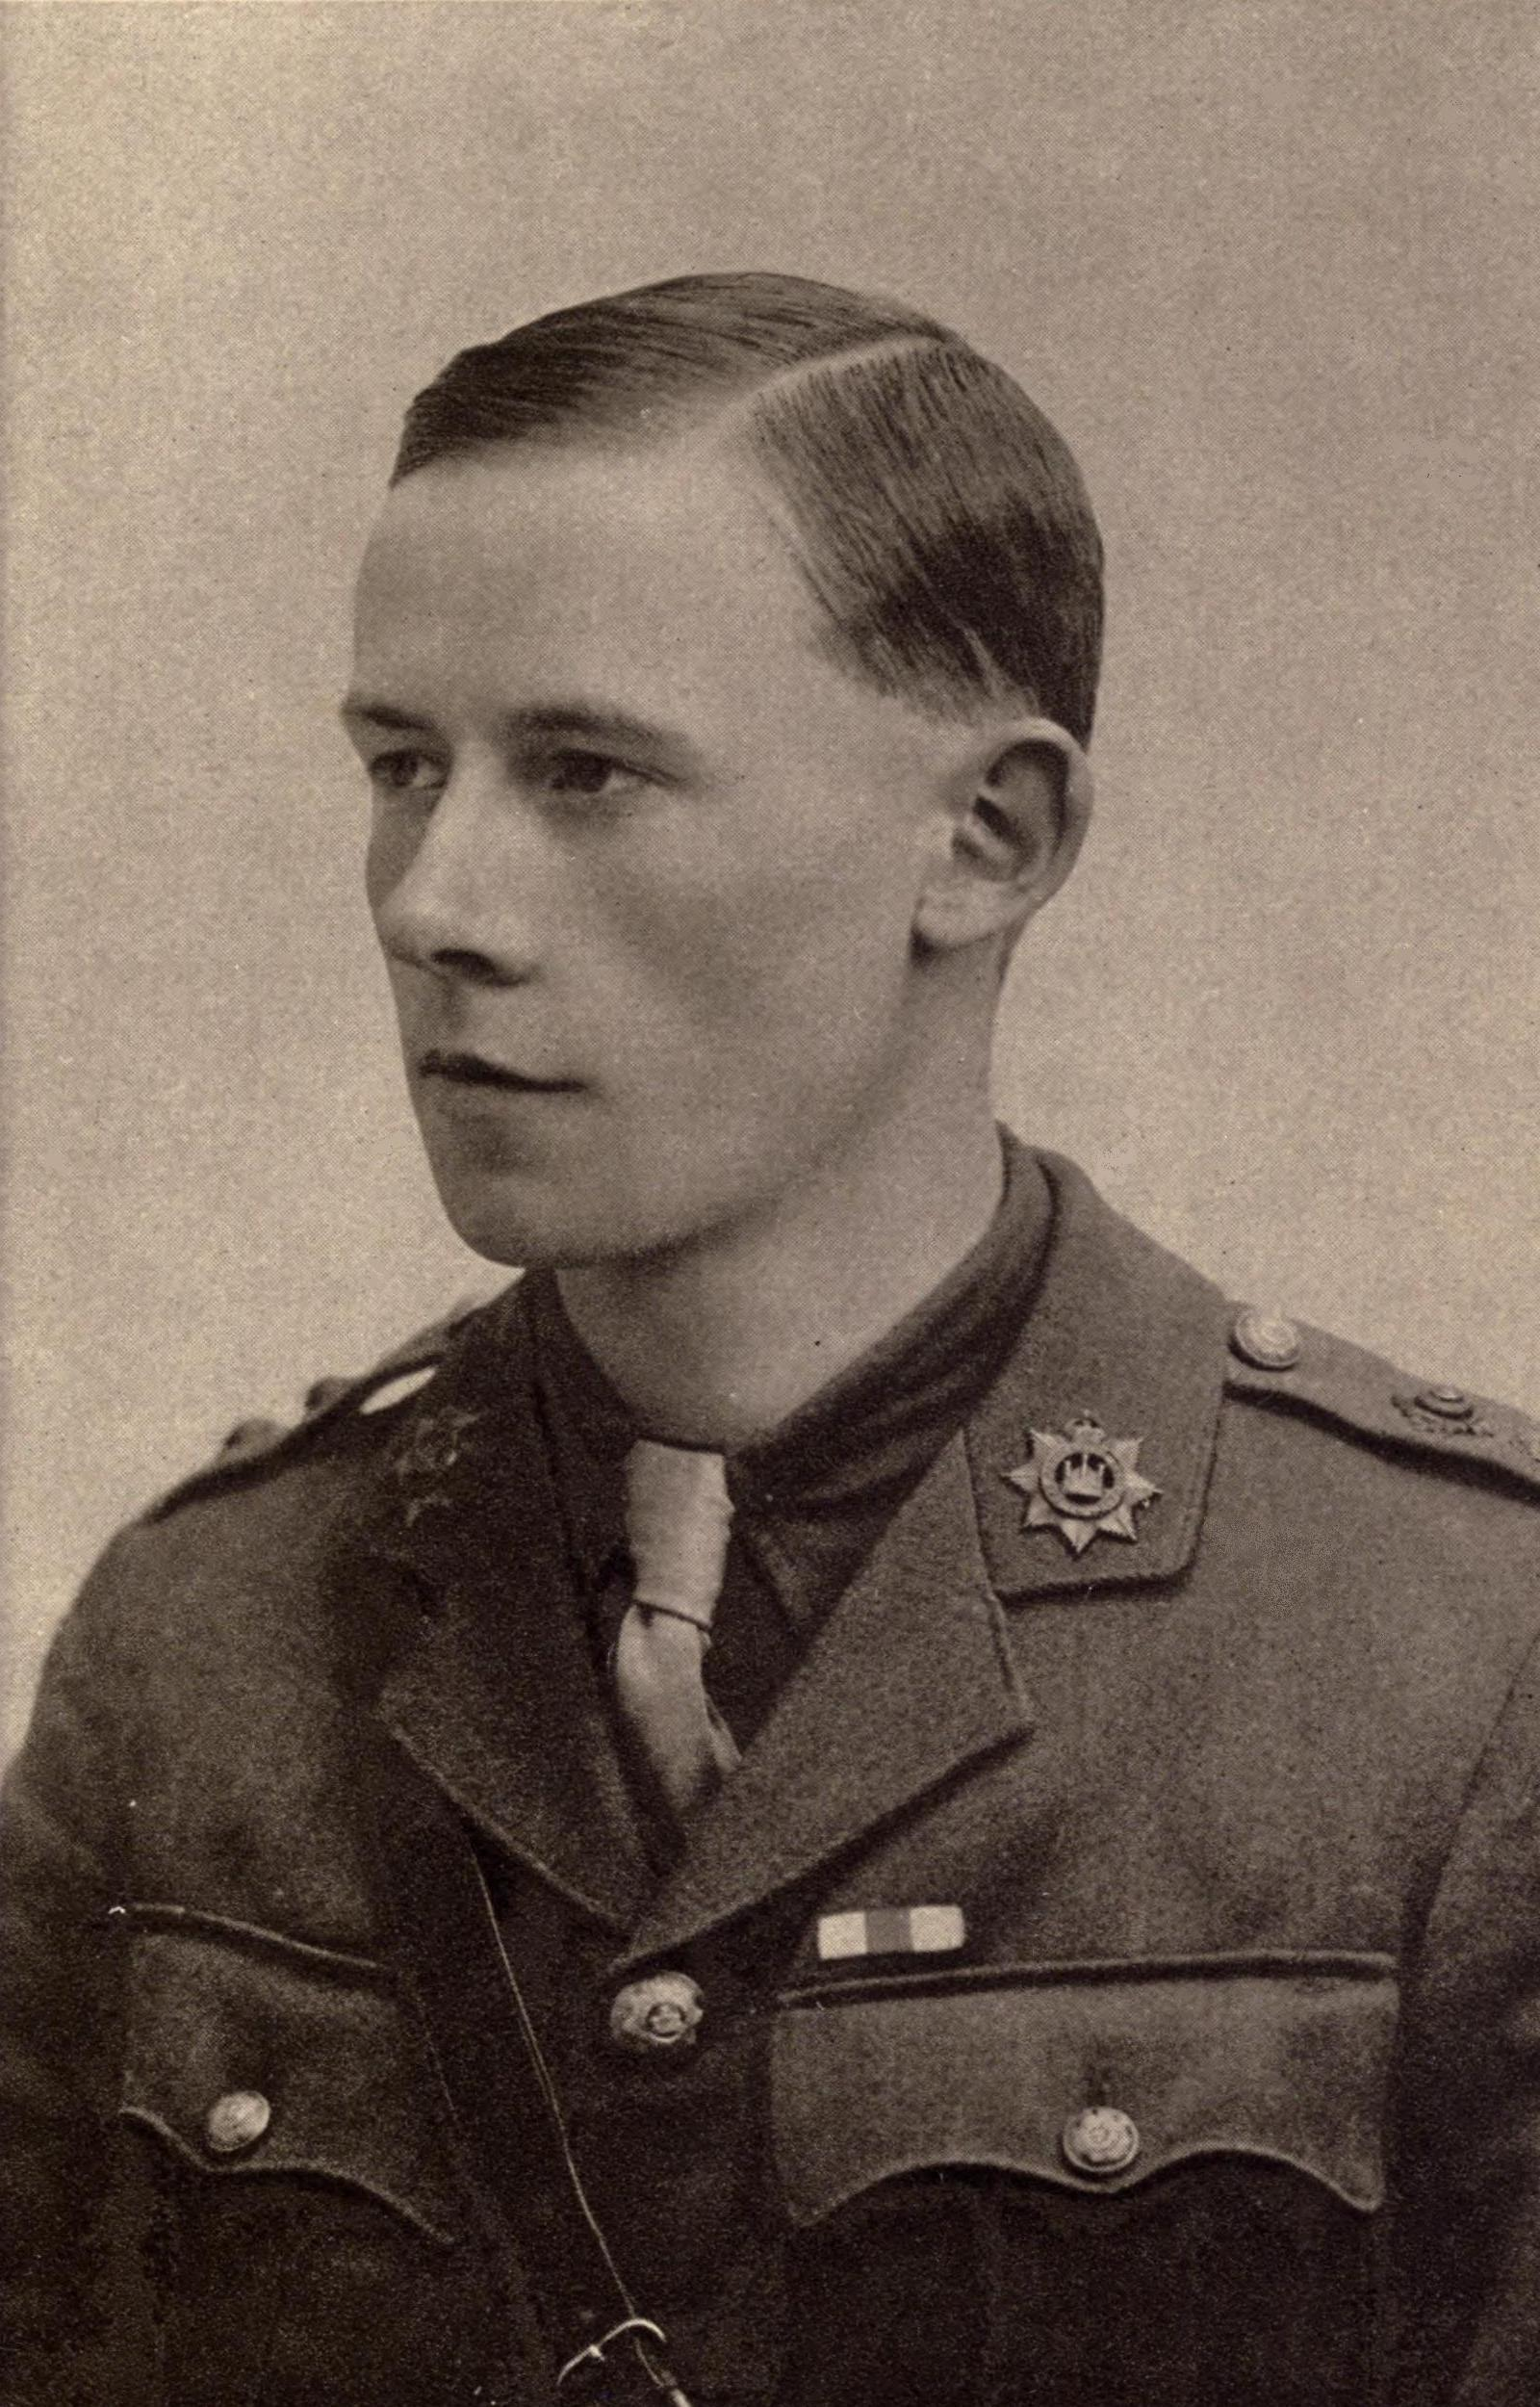 William_Noel_Hodgson_(For_Remembrance)_cropped_and_retouched(2)